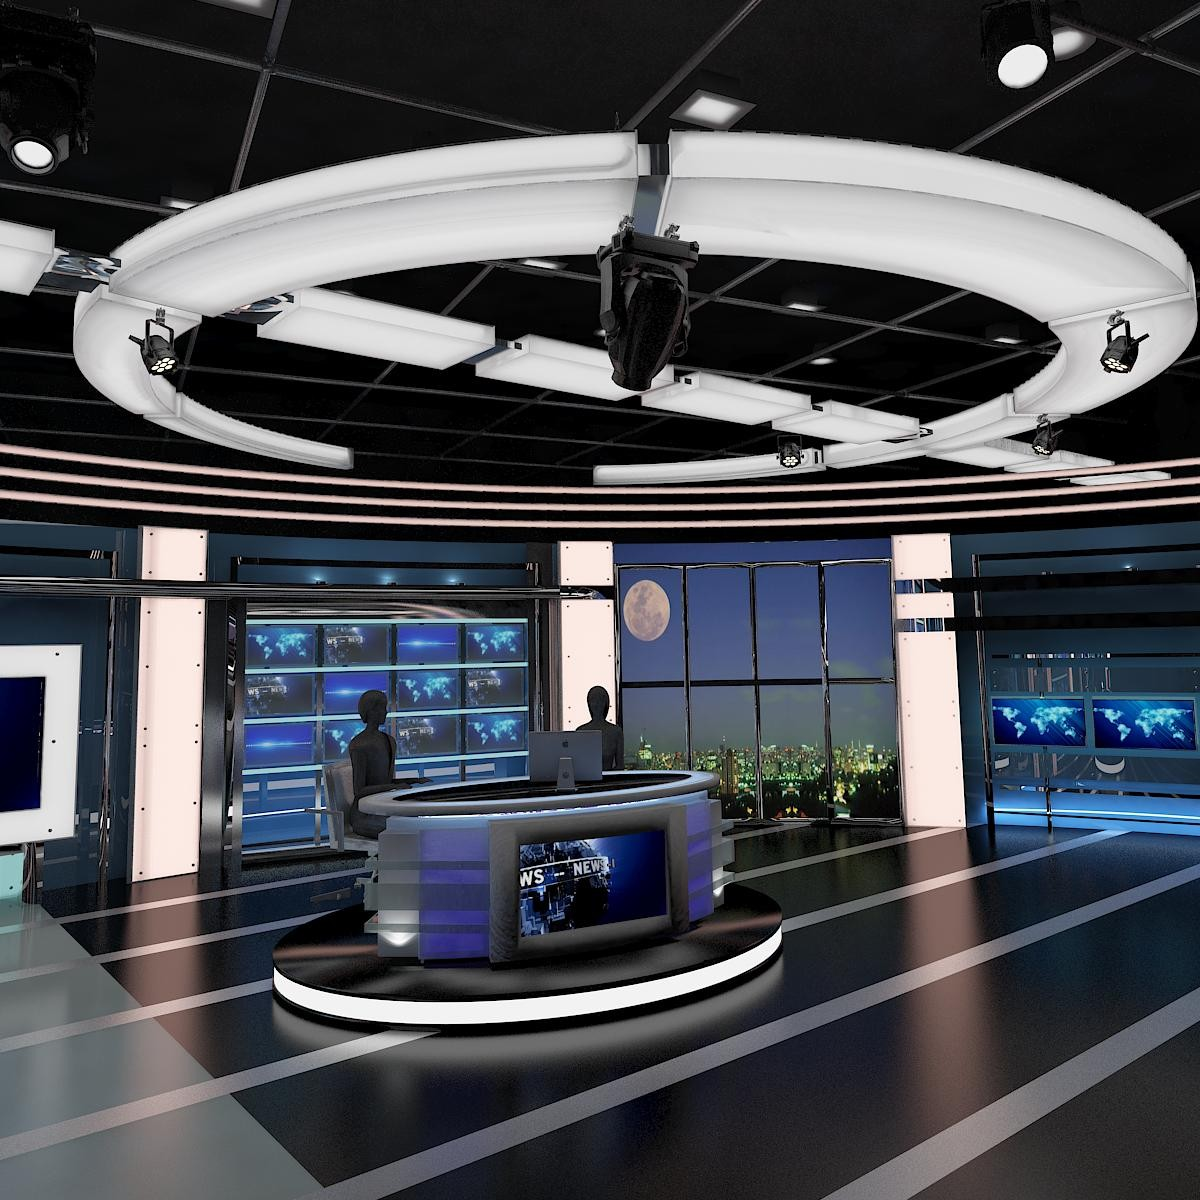 3d virtual tv studio news set model